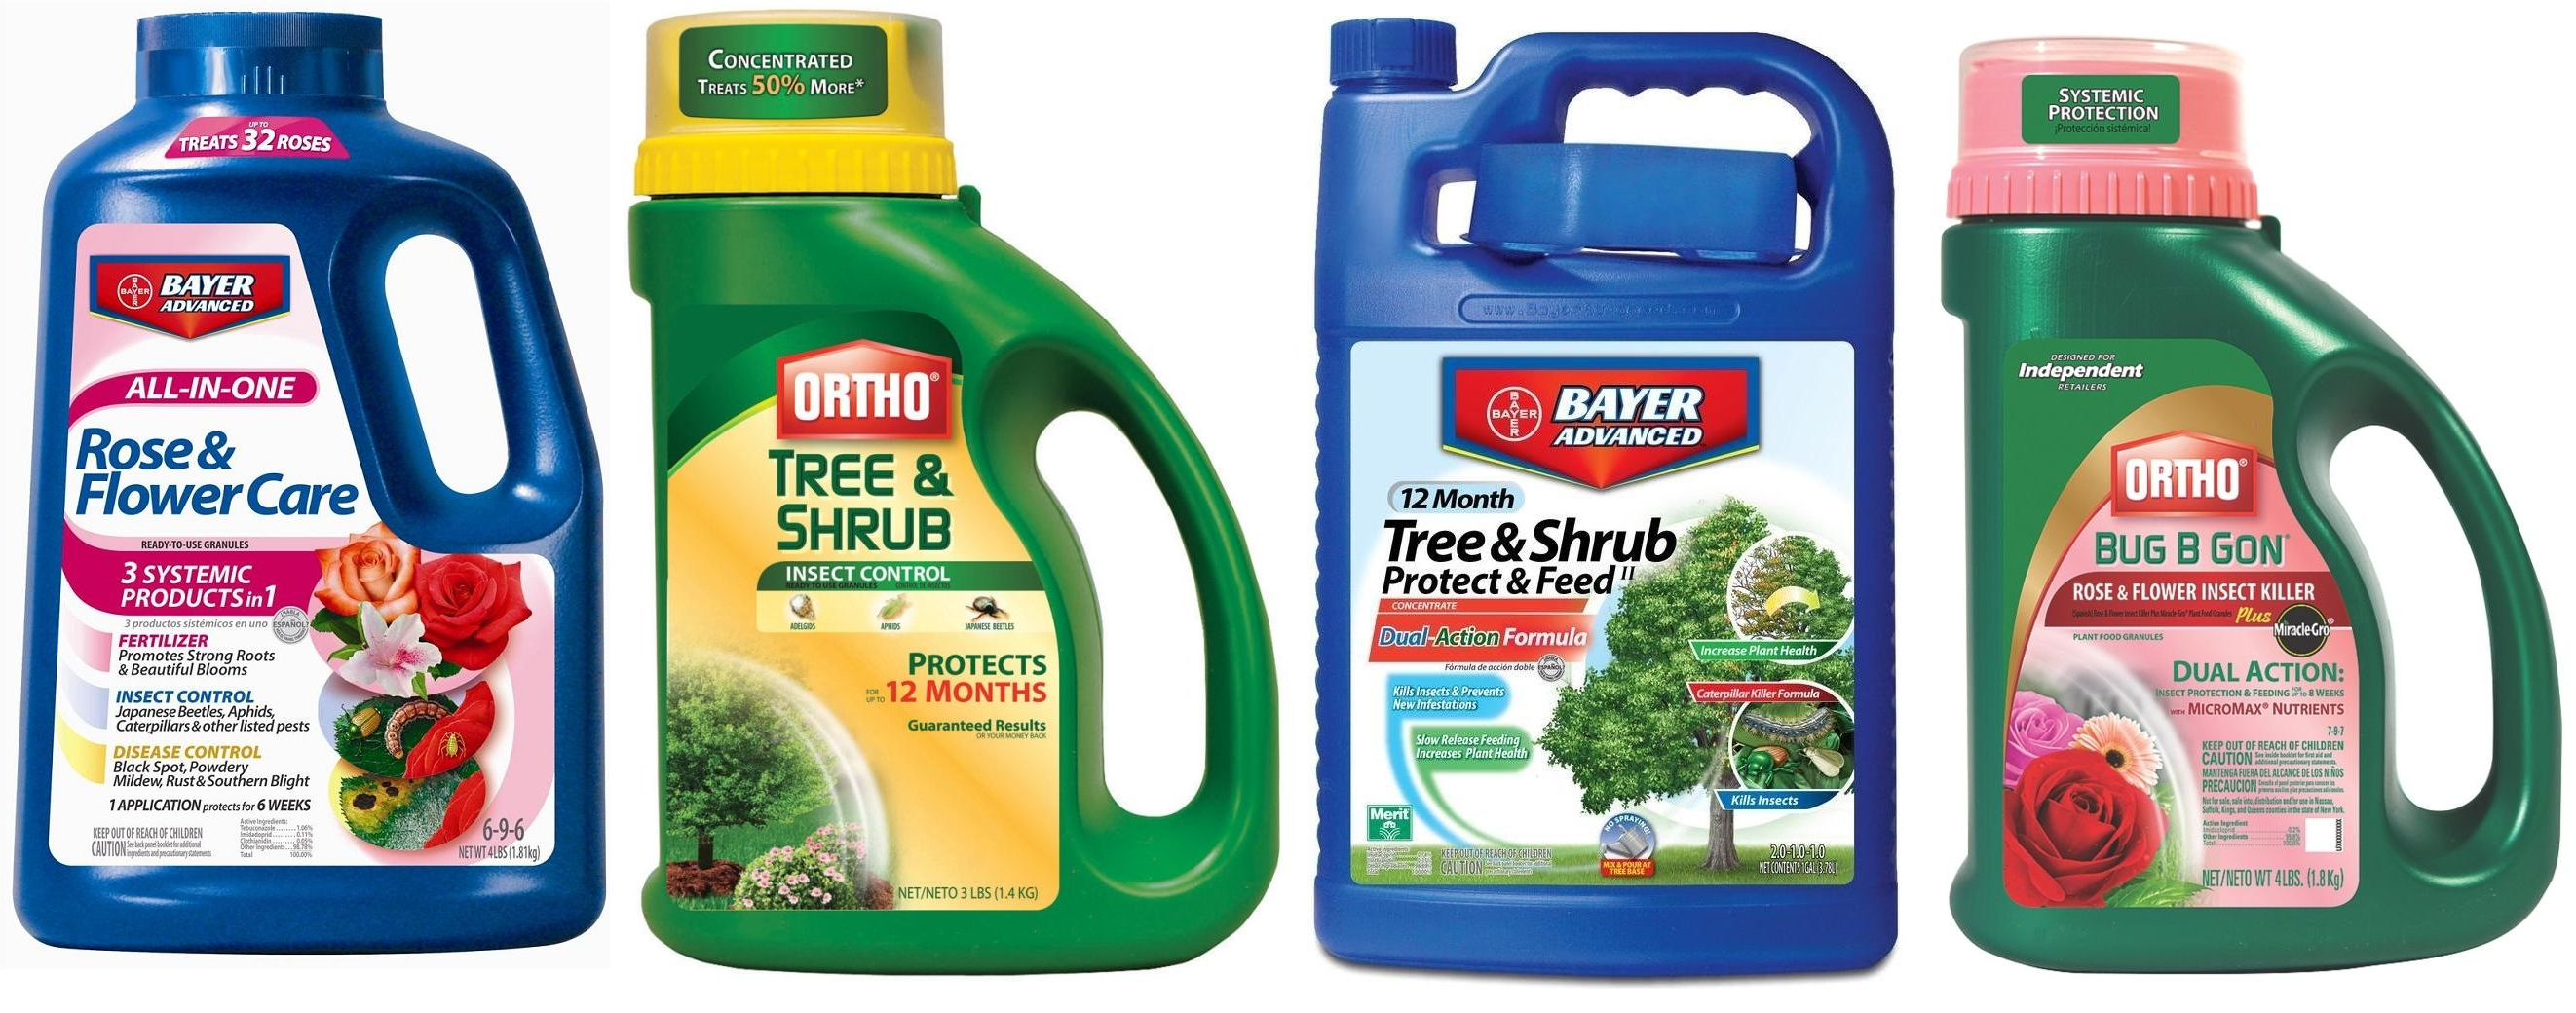 Mesmerizing Dogs Bayer Advanced Tree Shrub Getting Rid Imidacloprid Avoiding Worst Neonicotinoid Bayer Advanced Tree Tree Shrub Shrub Insect Control houzz-02 Bayer Advanced Tree And Shrub